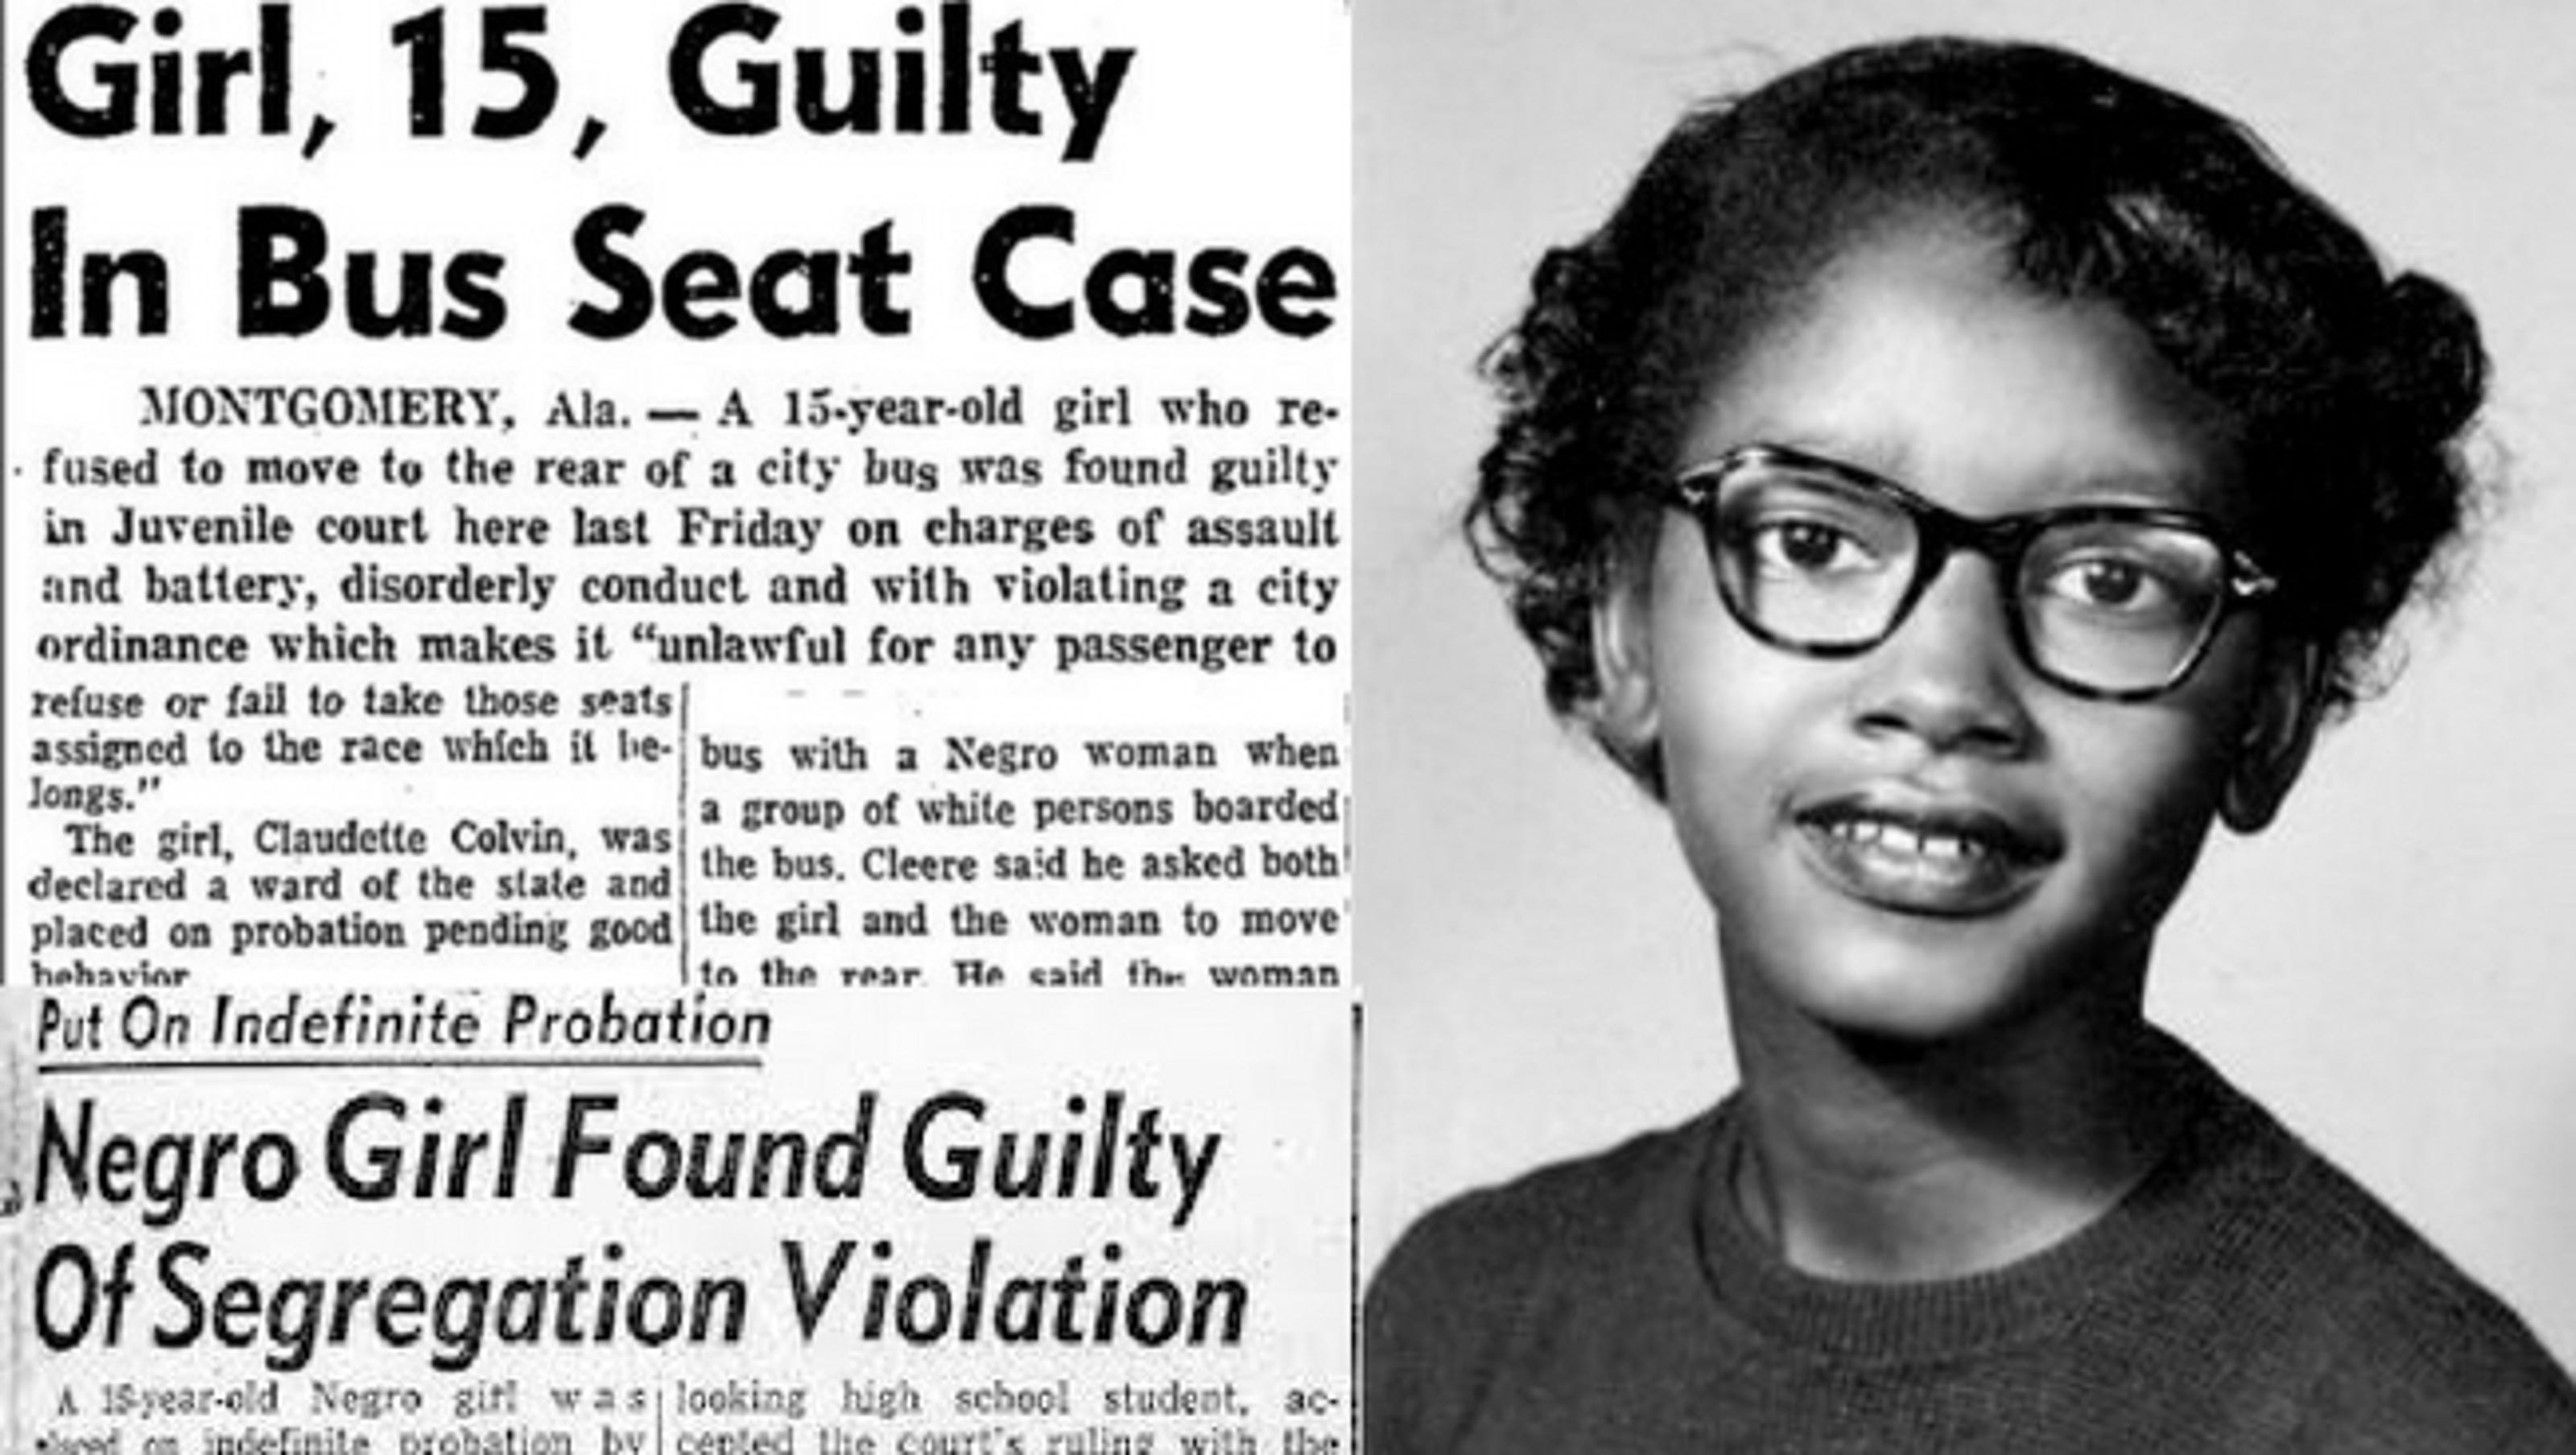 History: Before Rosa Parks, there was Claudette Colvin